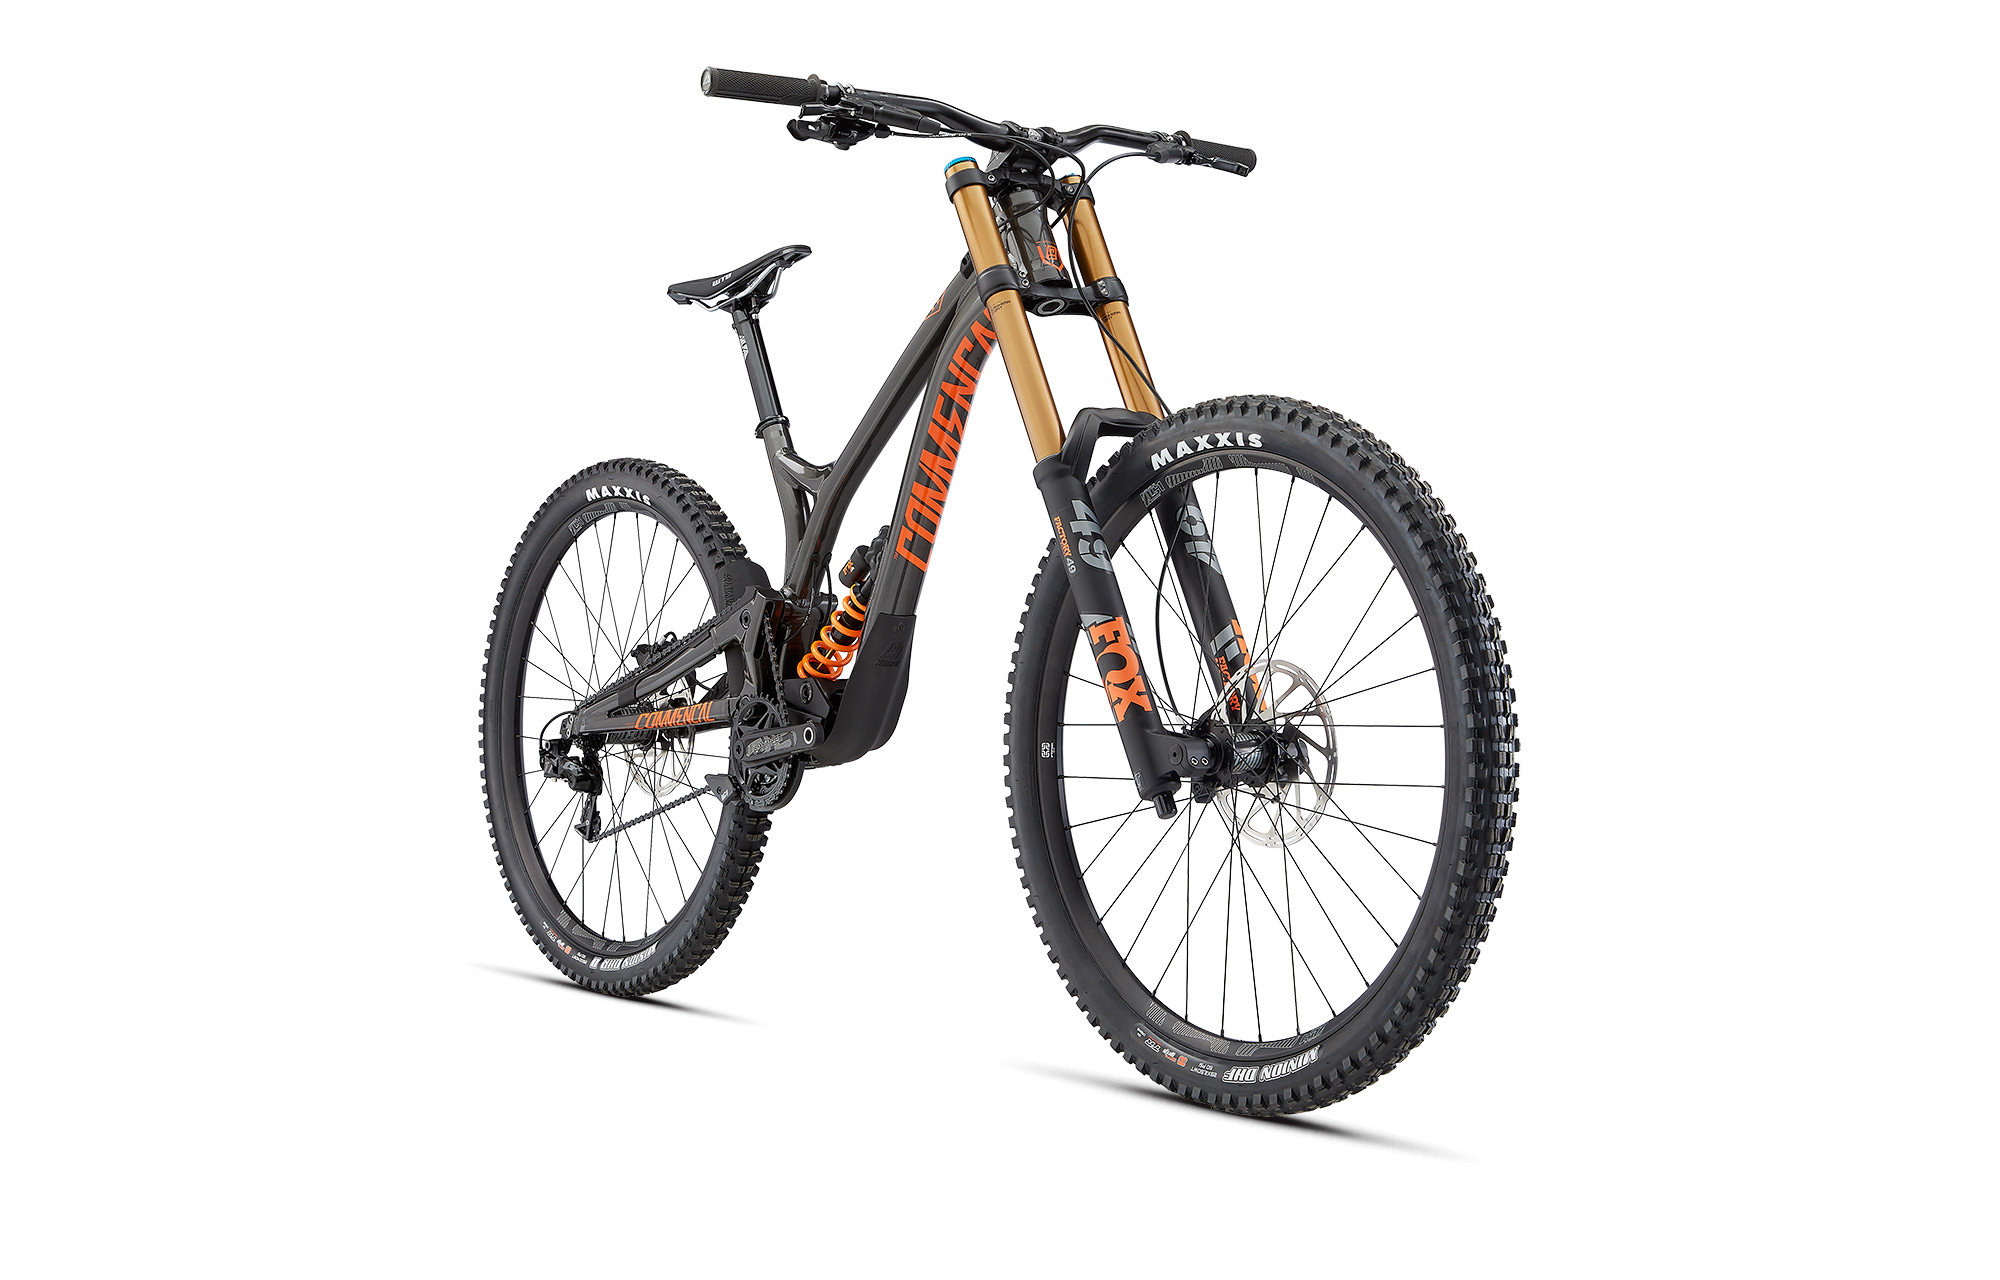 Cube 33 Meuble Modele 16 in addition Belltech 923sp besides Front suspension together with Meta Ht Am Race Plus 650b Black 2015 C2x16290677 further 15. on stock images car suspensions